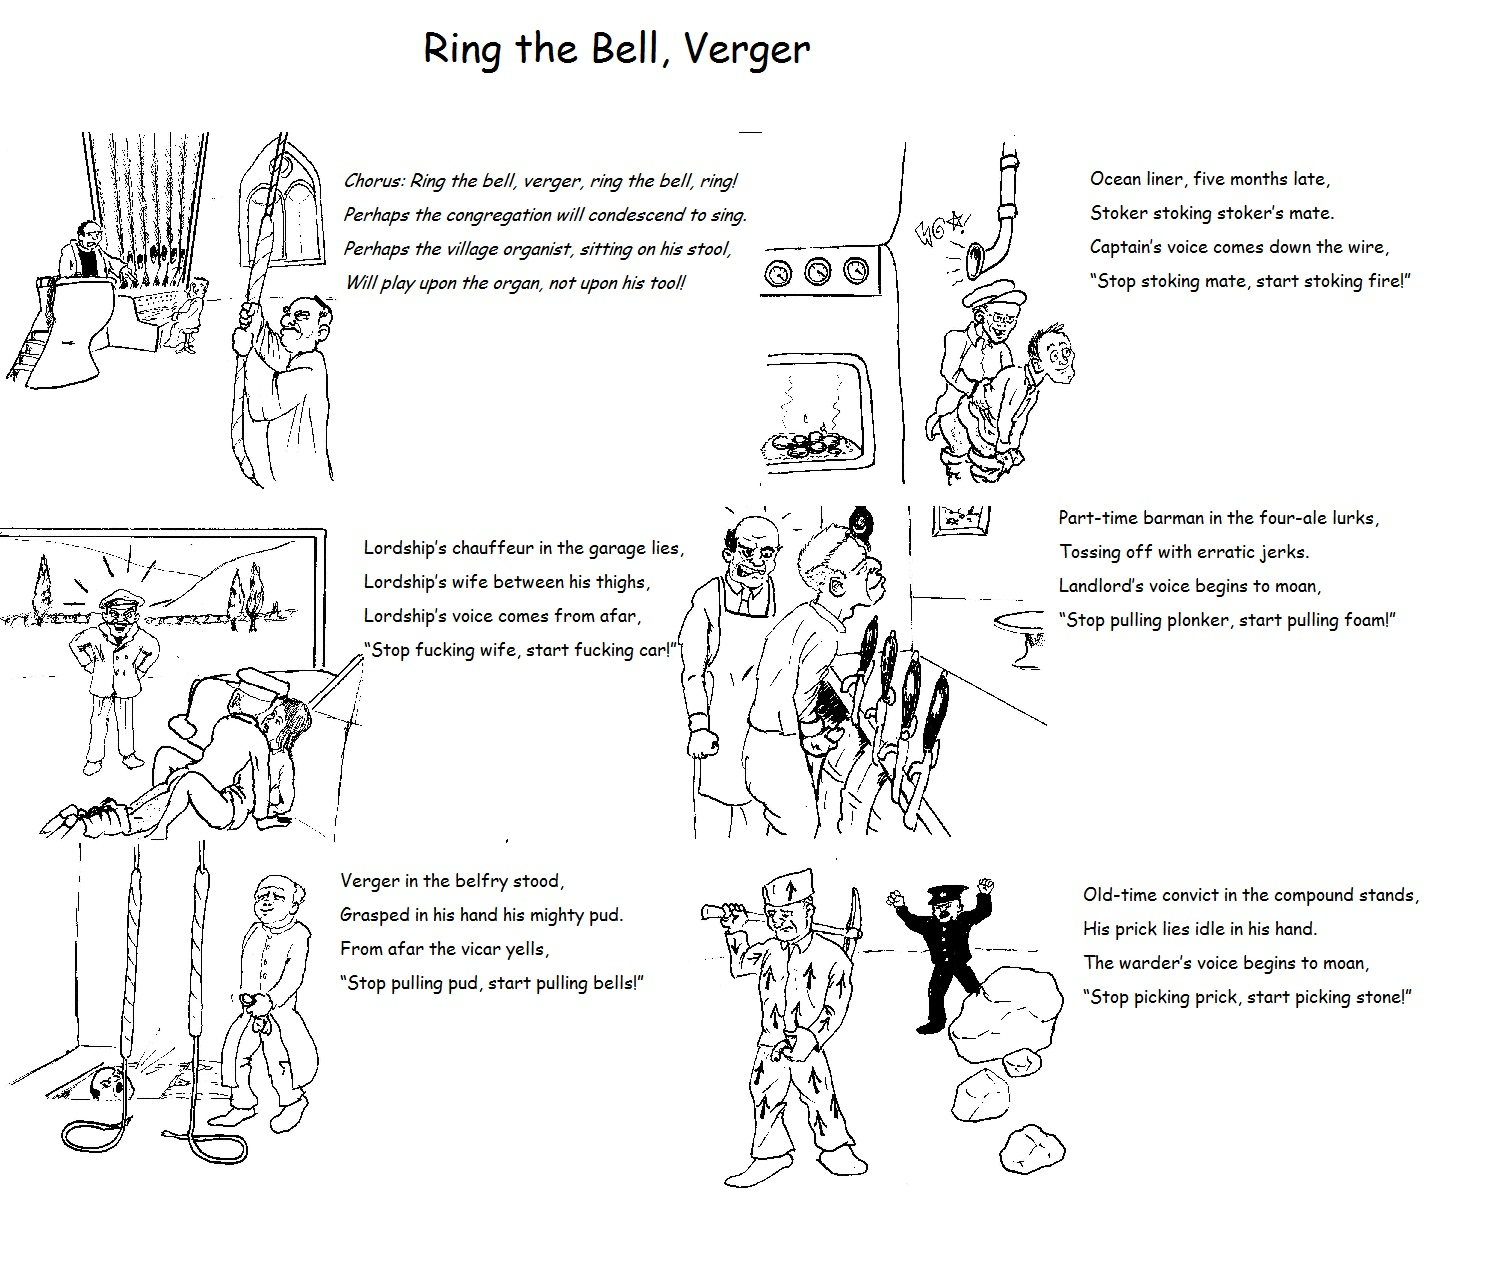 Ring the Bell, Verger